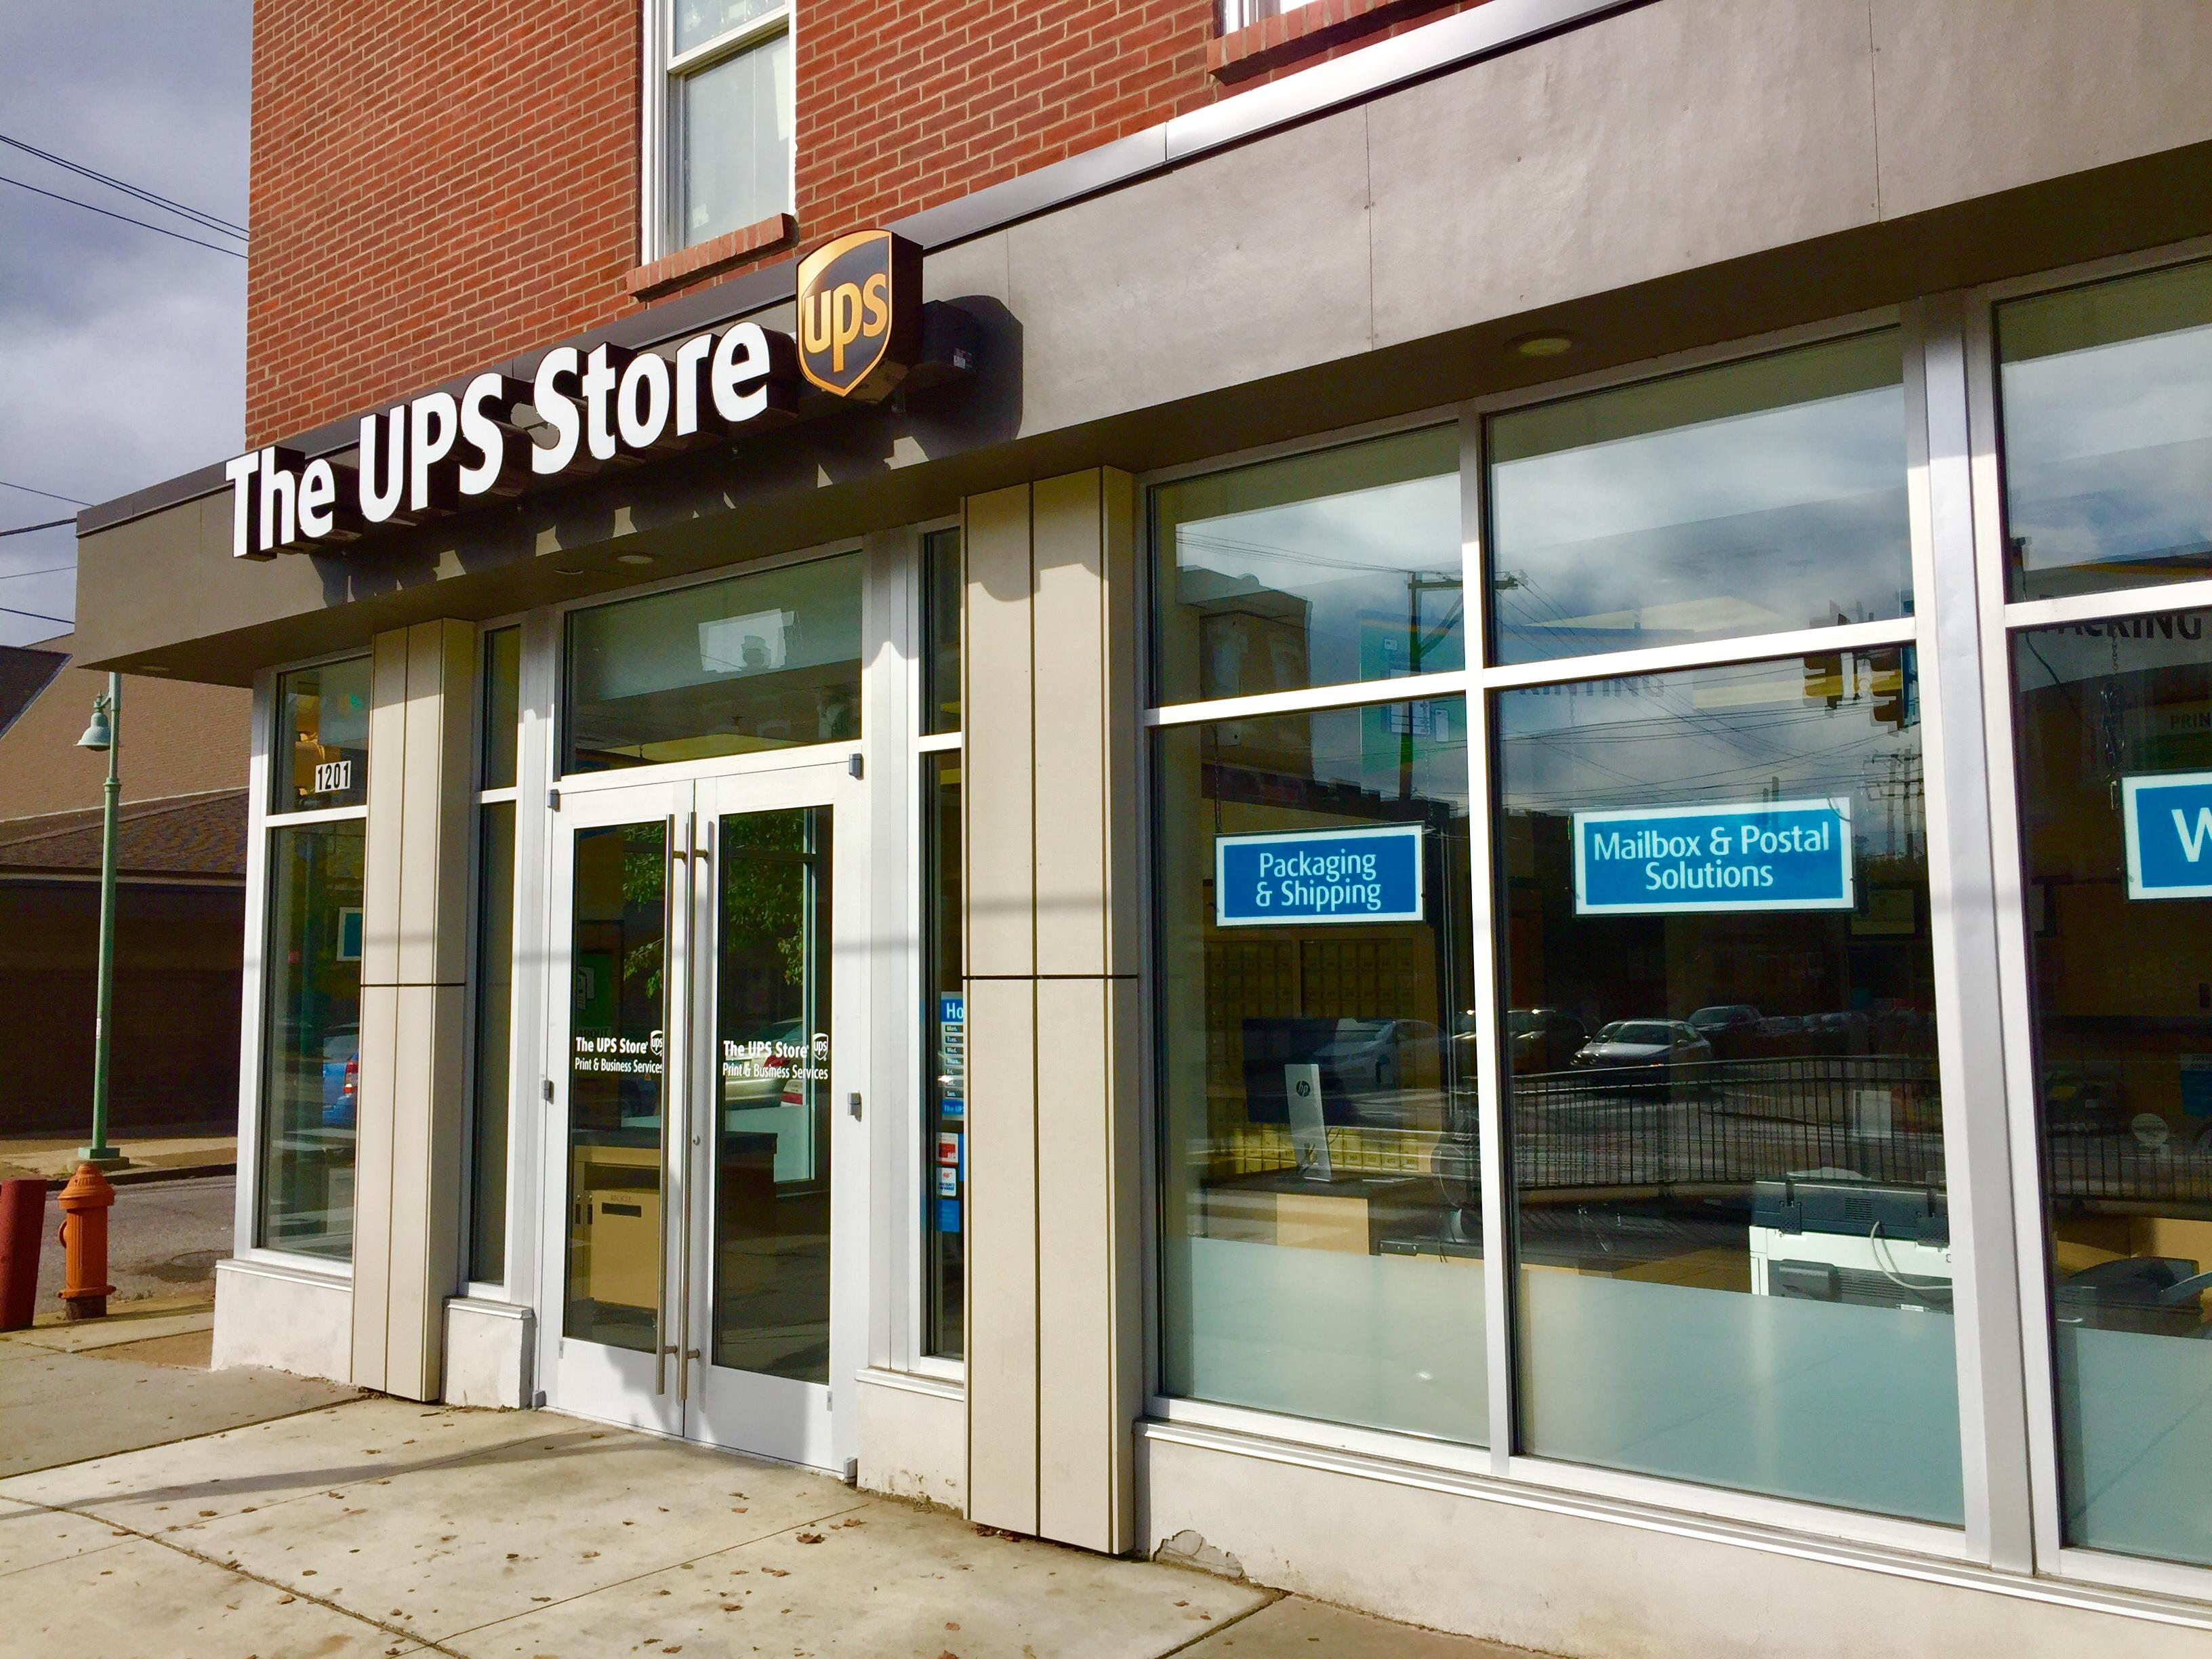 Glass door ups store - The Ups Store 1201 N 3rd St Philadelphia Pa Shipping Service Supplies Mapquest